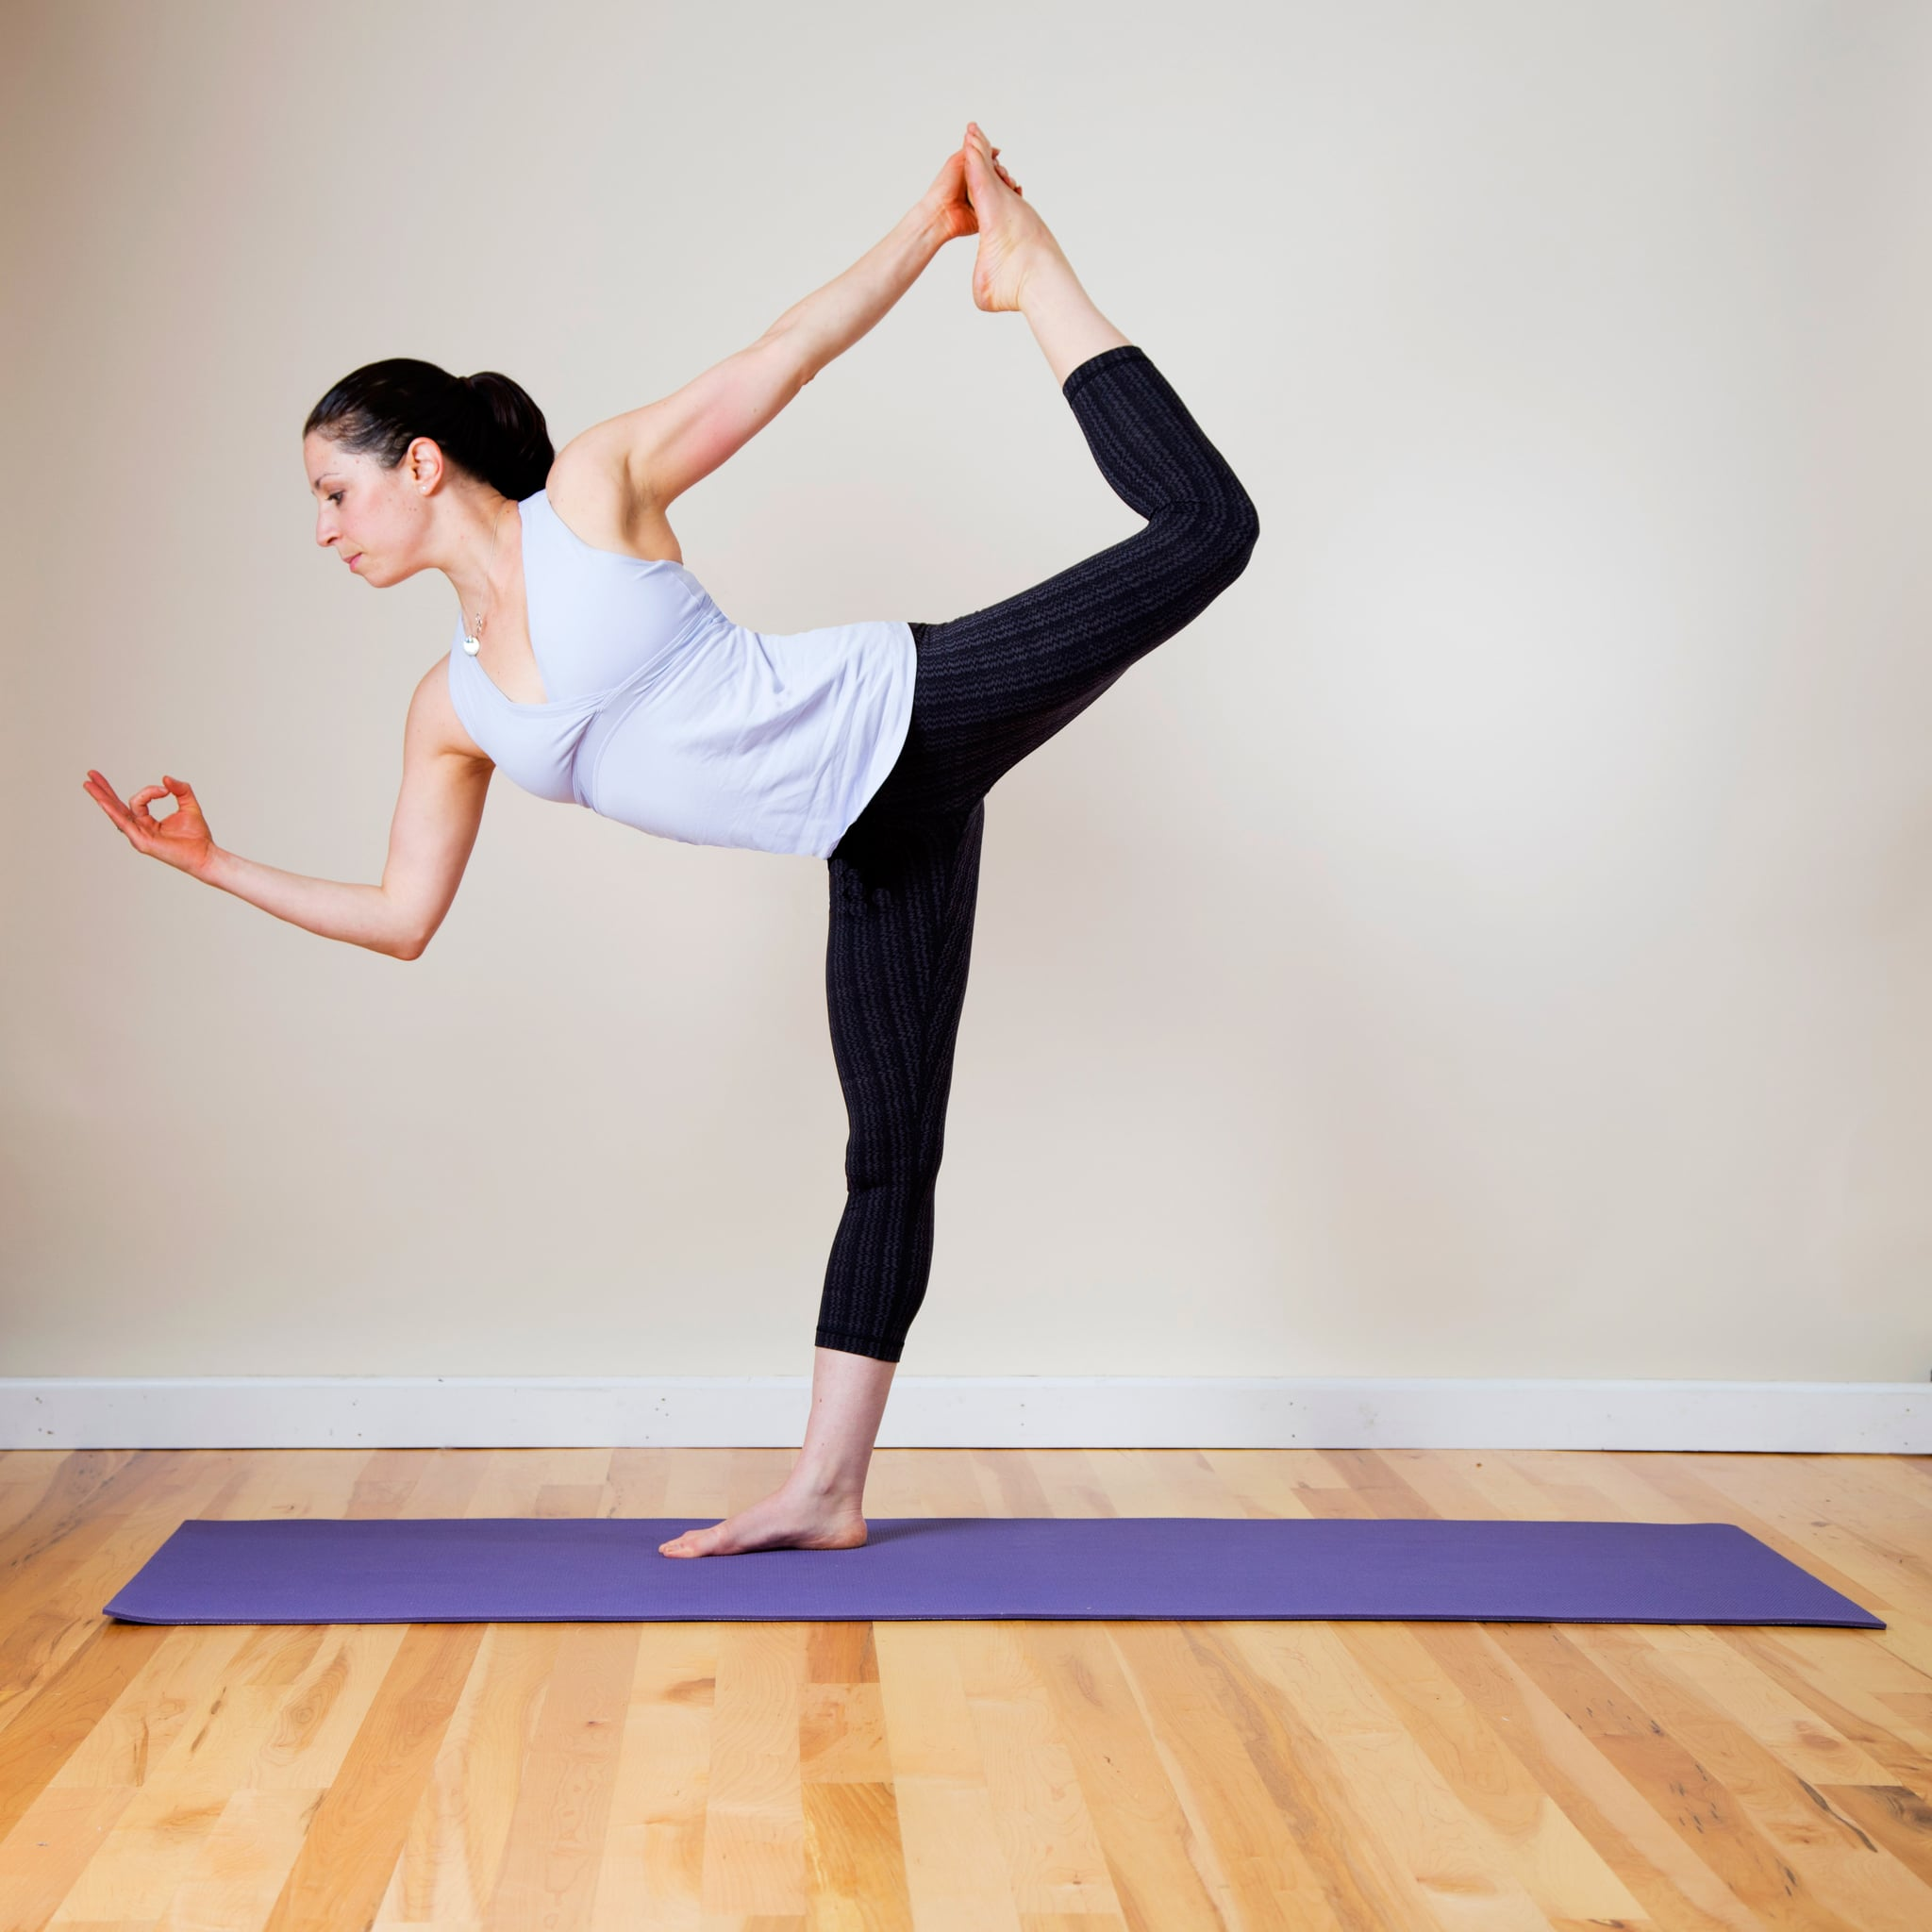 Yoga Poses to Increase Leg and Hip Flexibility   POPSUGAR Fitness